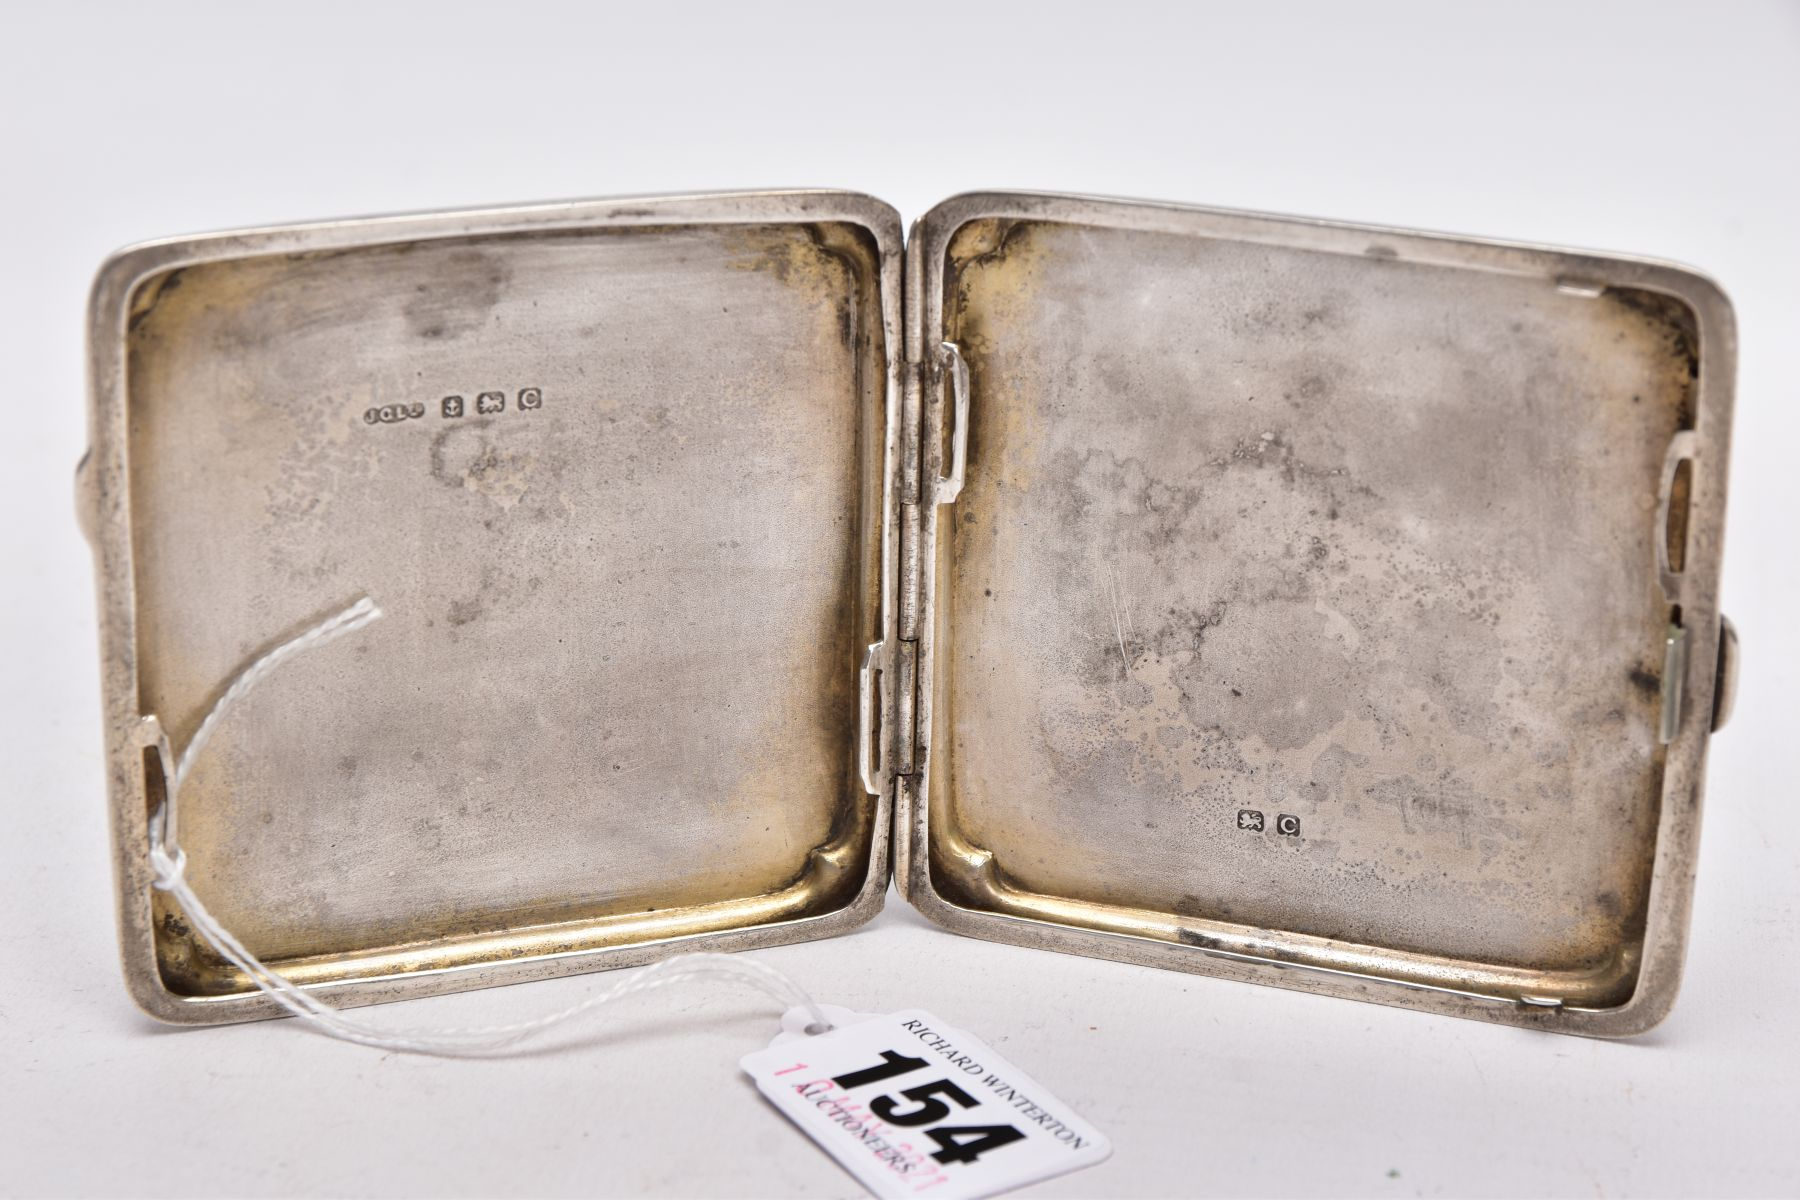 A SILVER CIGARETTE CASE, of an engine turn design, engraved monogram, missing elastic straps on - Image 2 of 3